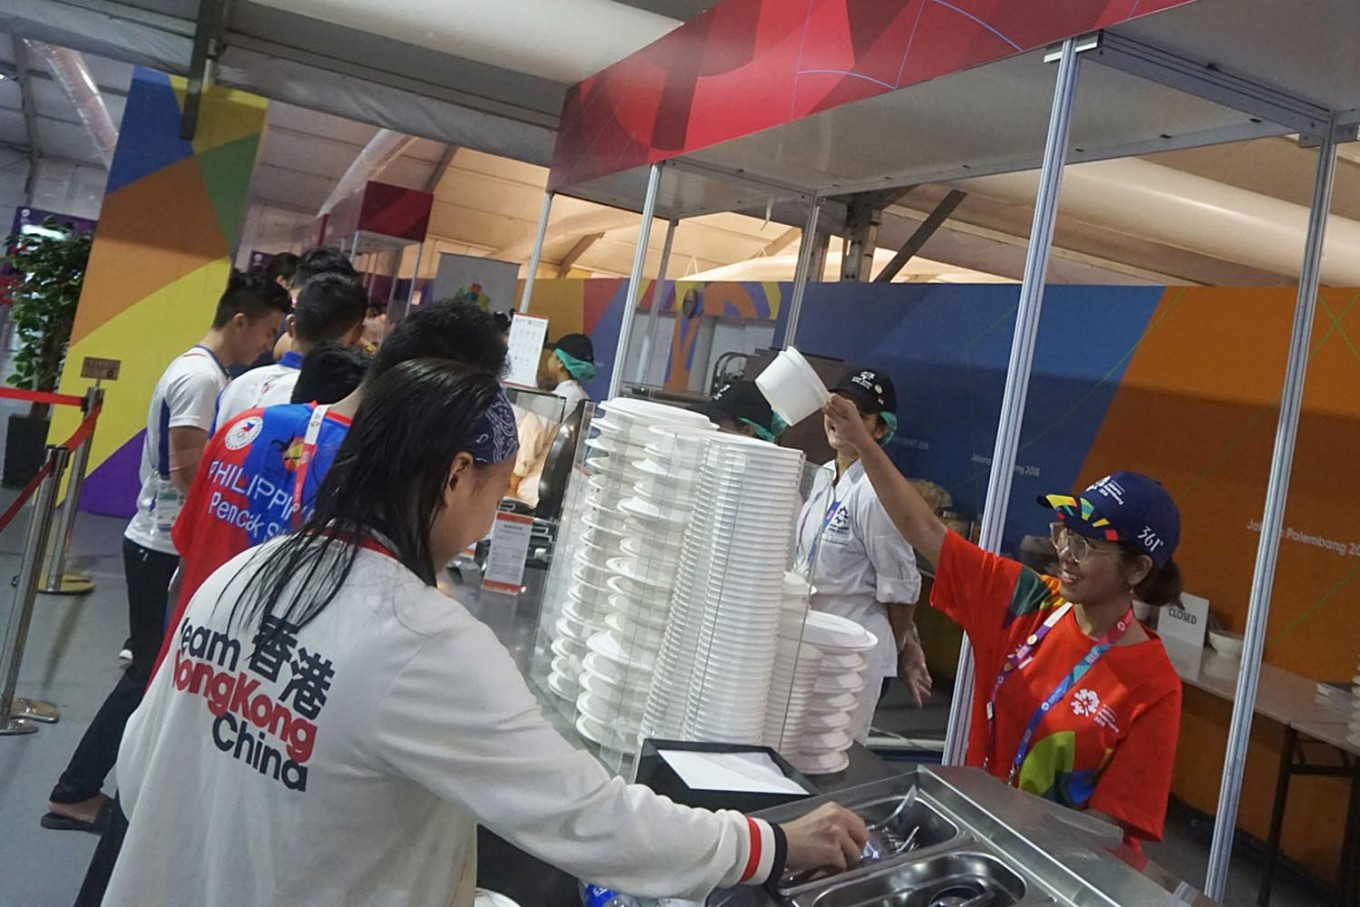 An officer takes orders from athletes at Jakarta athlete's village in Kemayoran. JP/Gemma Holliani Cahya